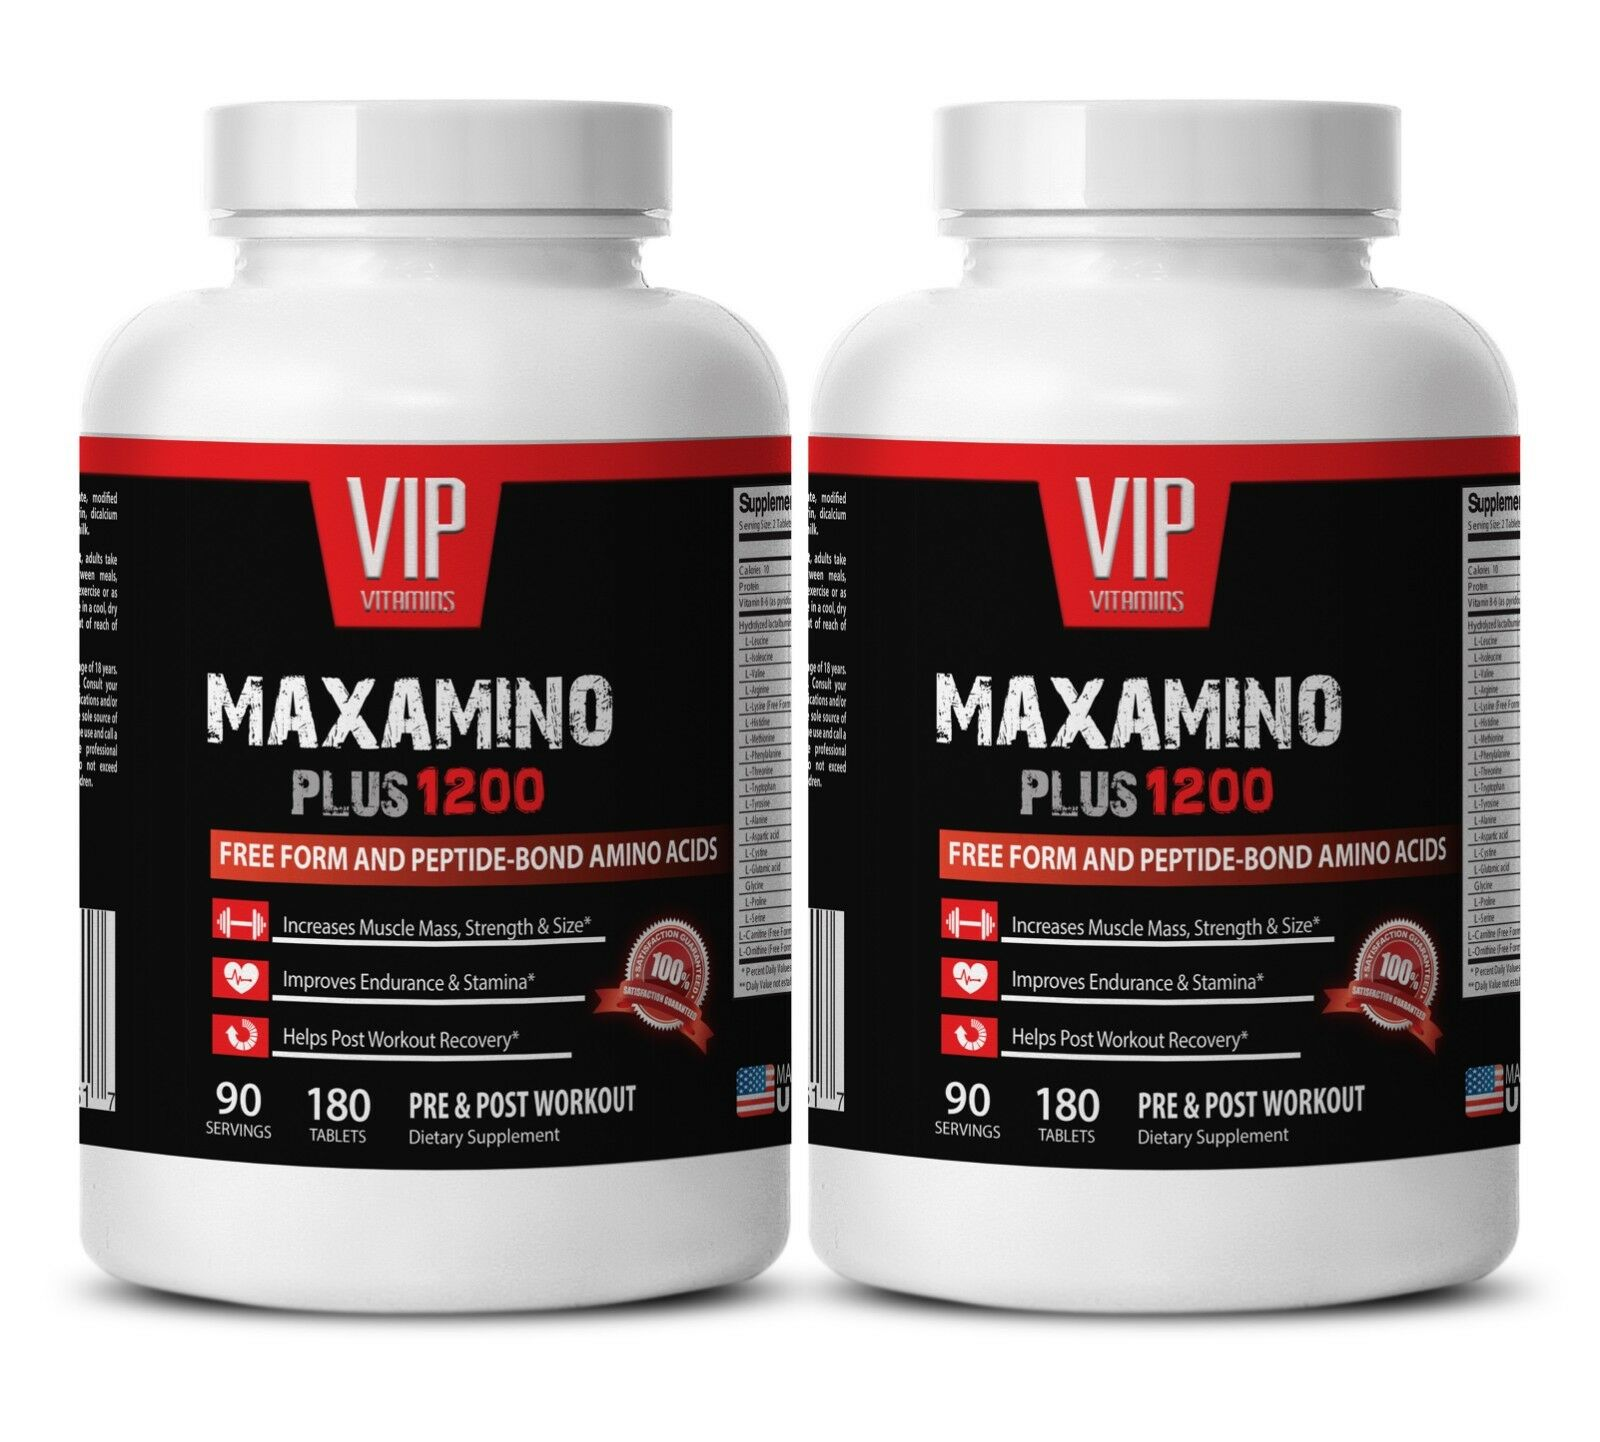 Post workout supplement - MAXAMINO PLUS 1200 2B- Muscle growth supplements